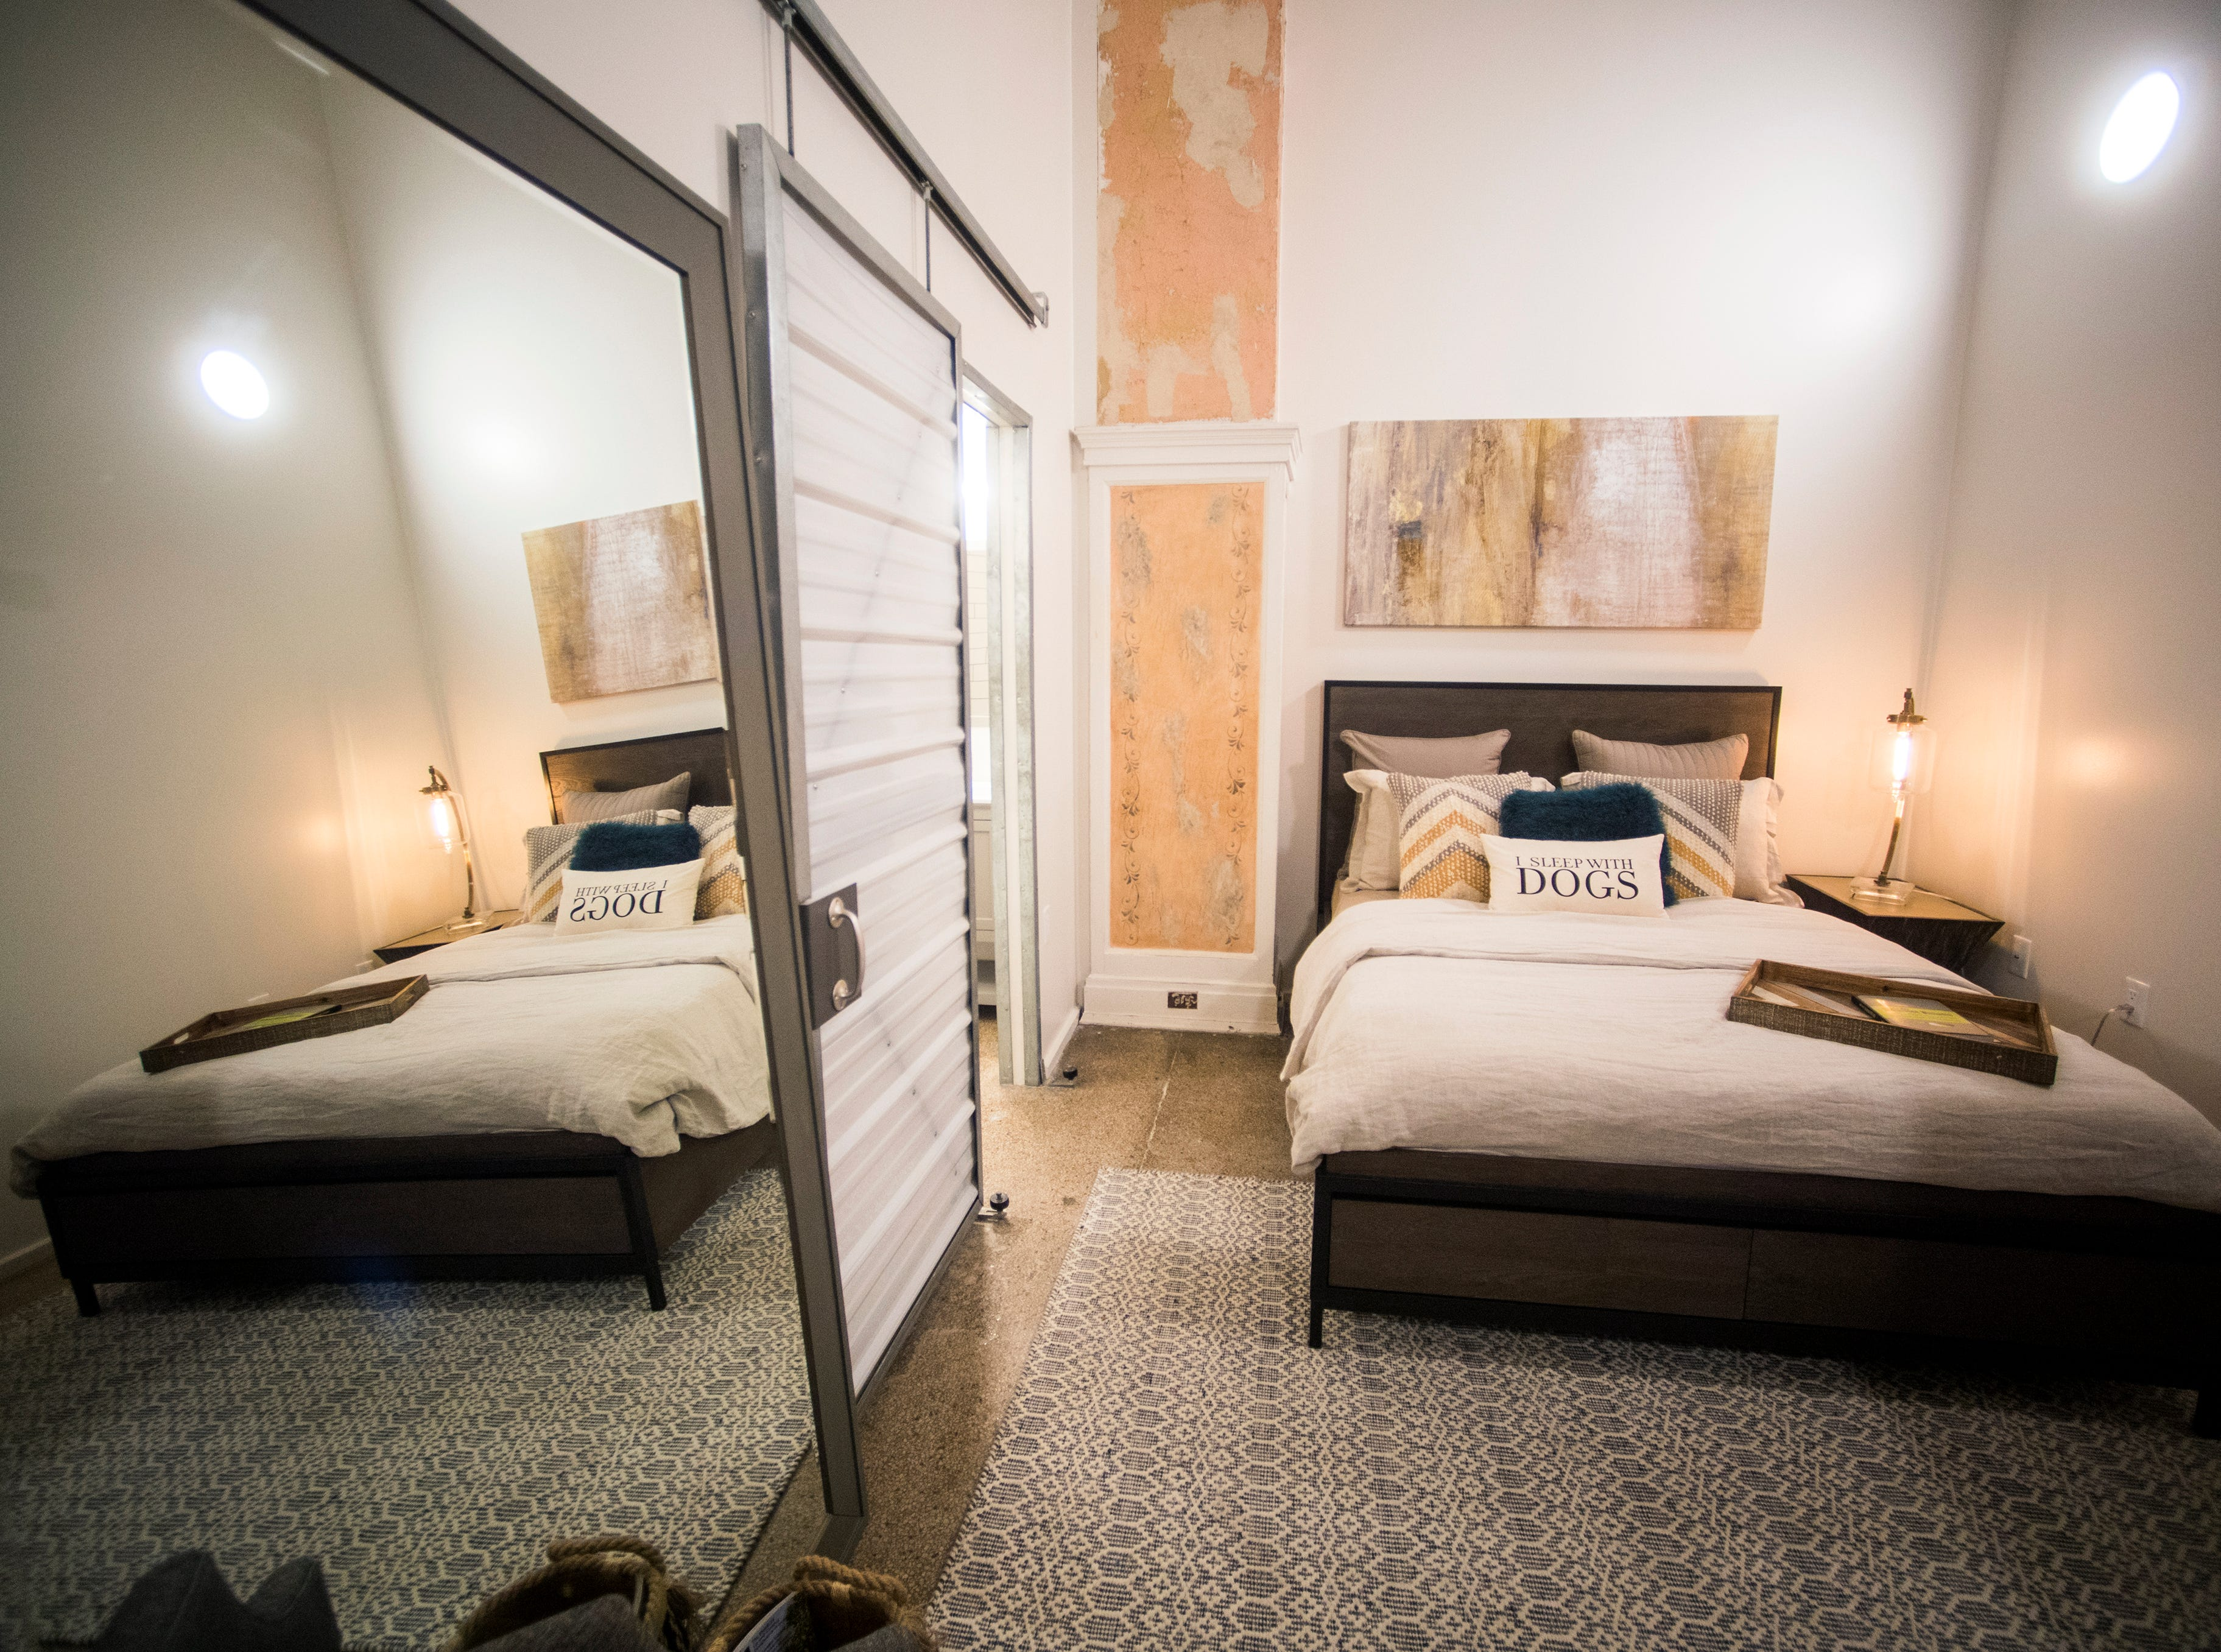 A bedroom in the condos being renovated at Sterchi Lofts on Gay St. in downtown Knoxville.